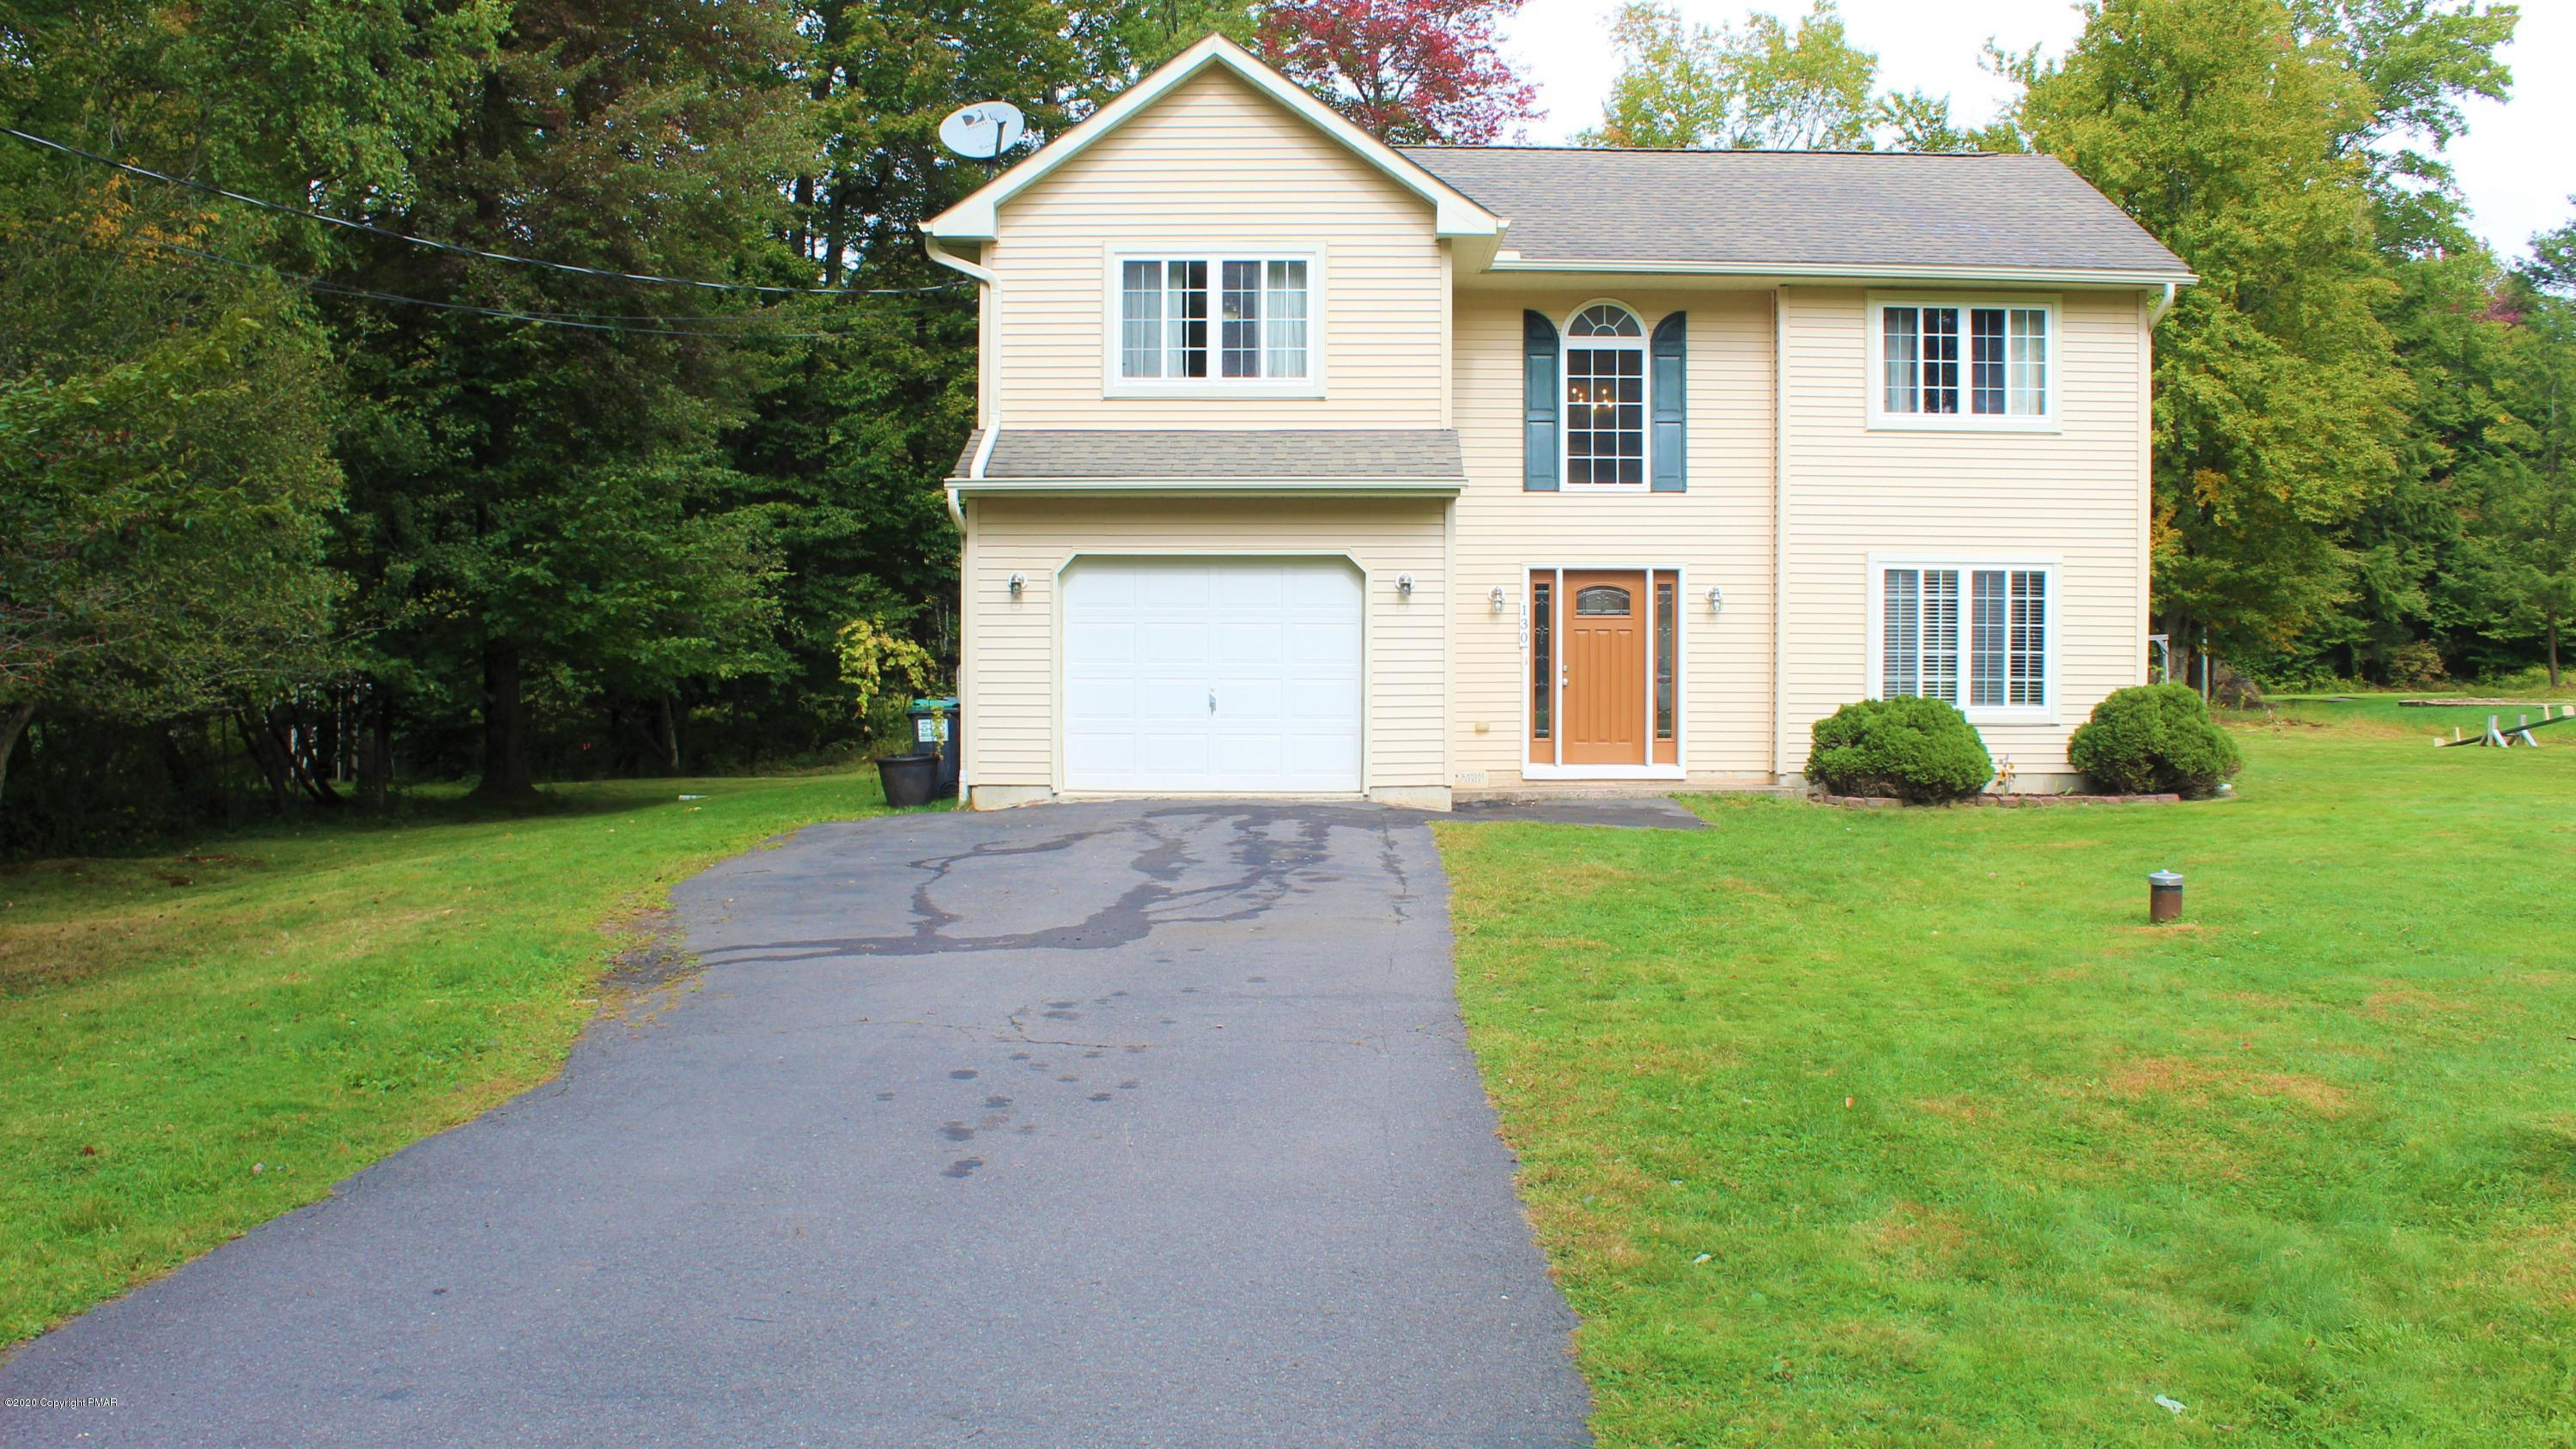 130 Cranberry Dr, Blakeslee, PA 18610